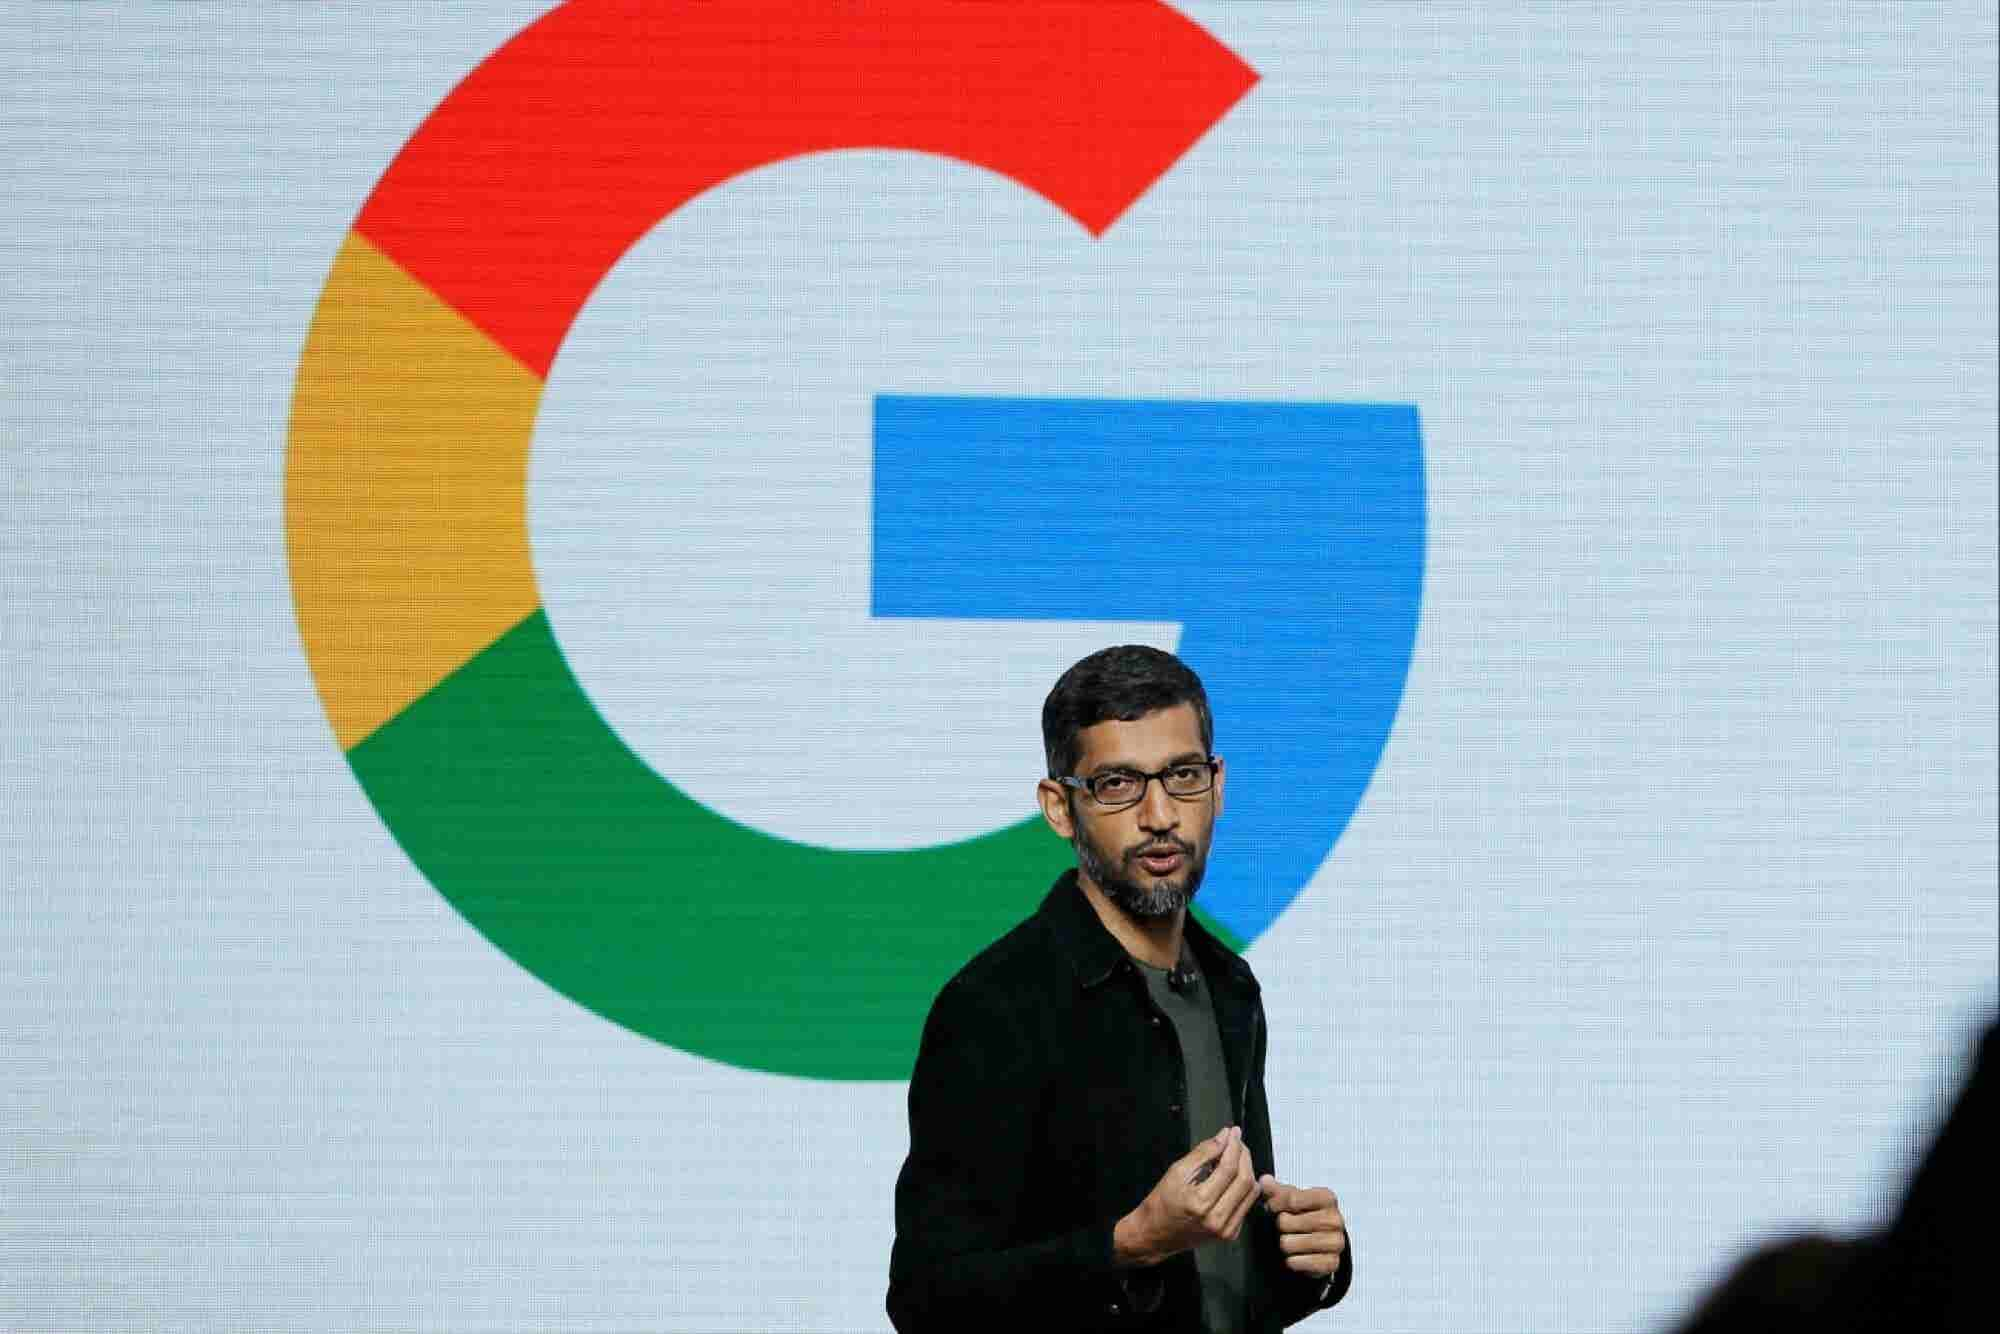 Analysts Predict the YouTube Advertiser Boycott Will Cost Google $750 Million